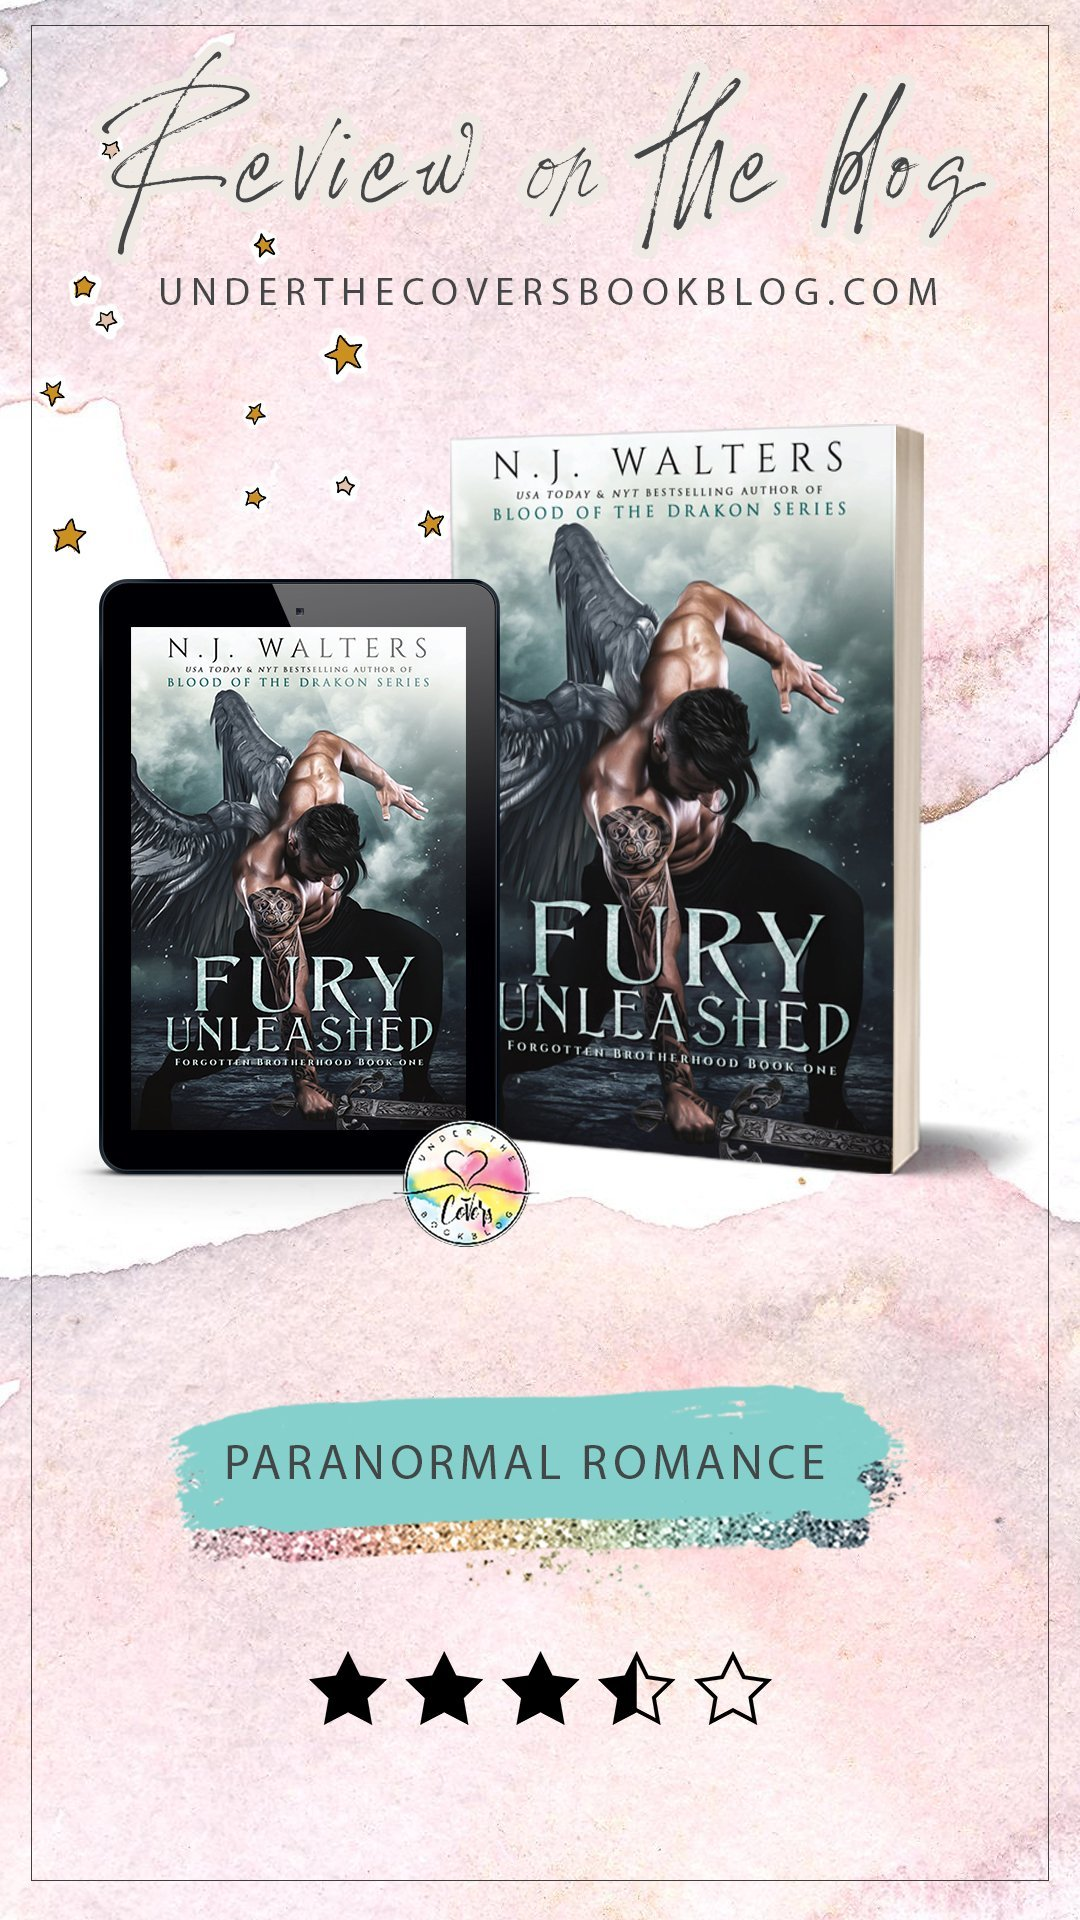 ARC Review: Fury Unleashed by N.J. Walters